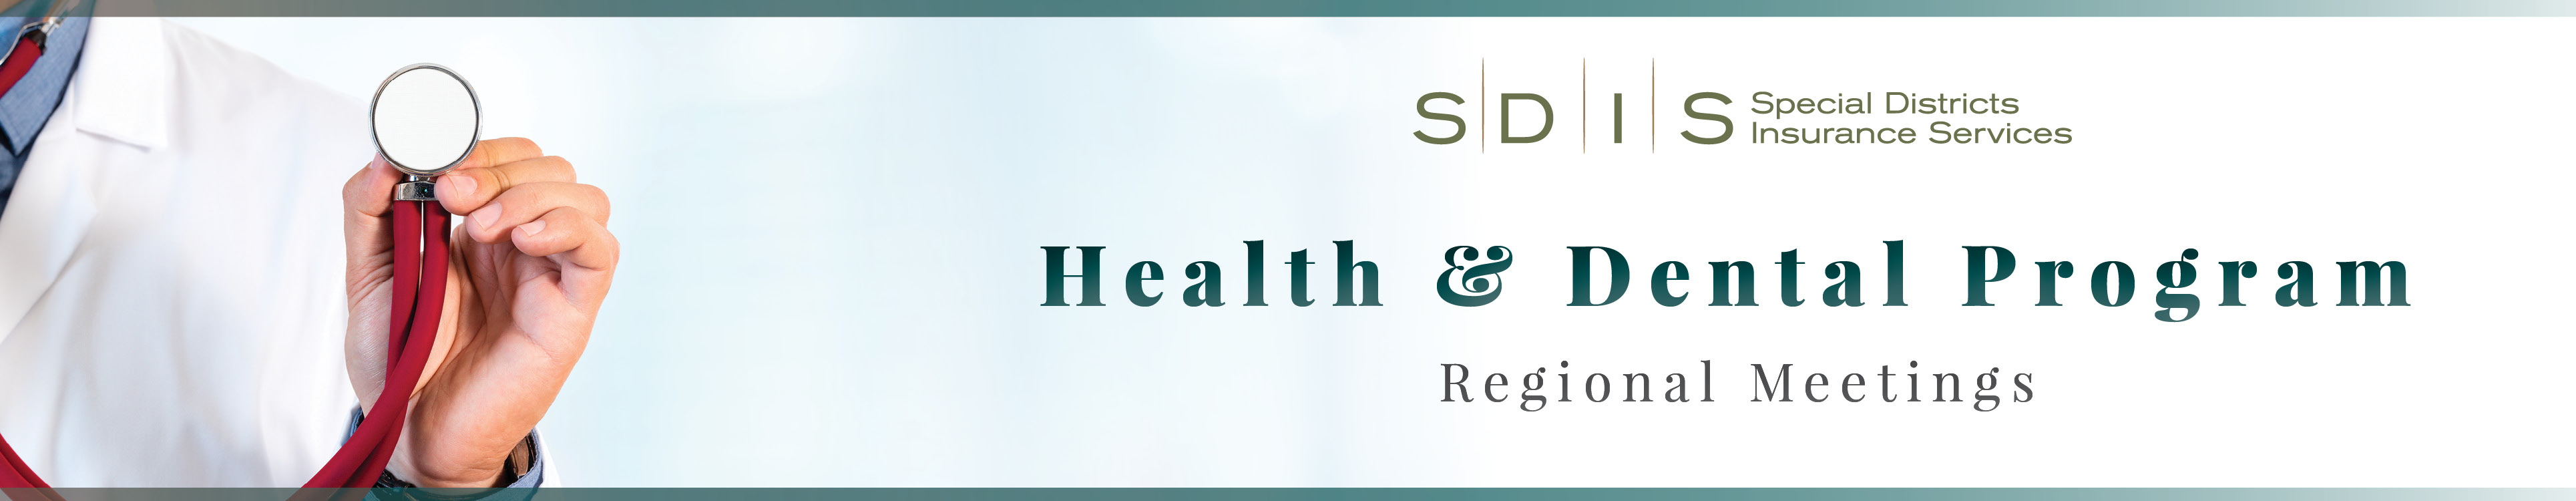 SDIS Health & Dental Program Regional Meeting